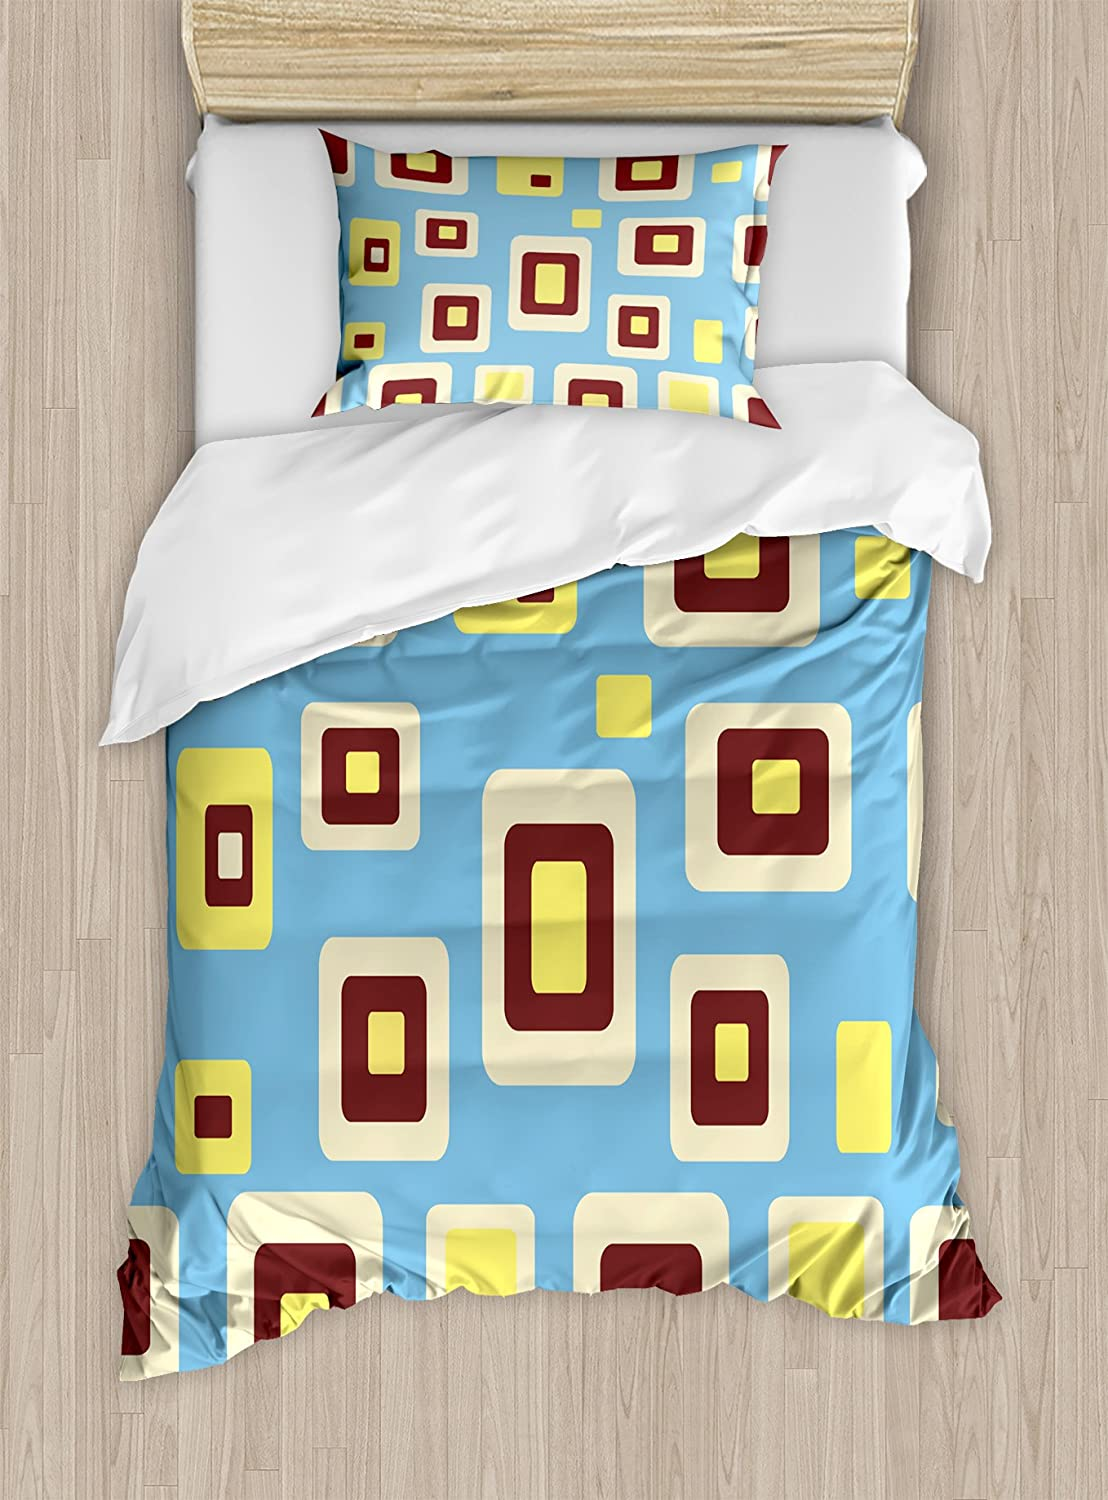 Ambesonne Yellow and Blue Duvet Cover Set, Retro Style Geometric Pattern Round Edged Rectangles, Decorative 2 Piece Bedding Set with 1 Pillow Sham, Twin Size, Blue Yellow